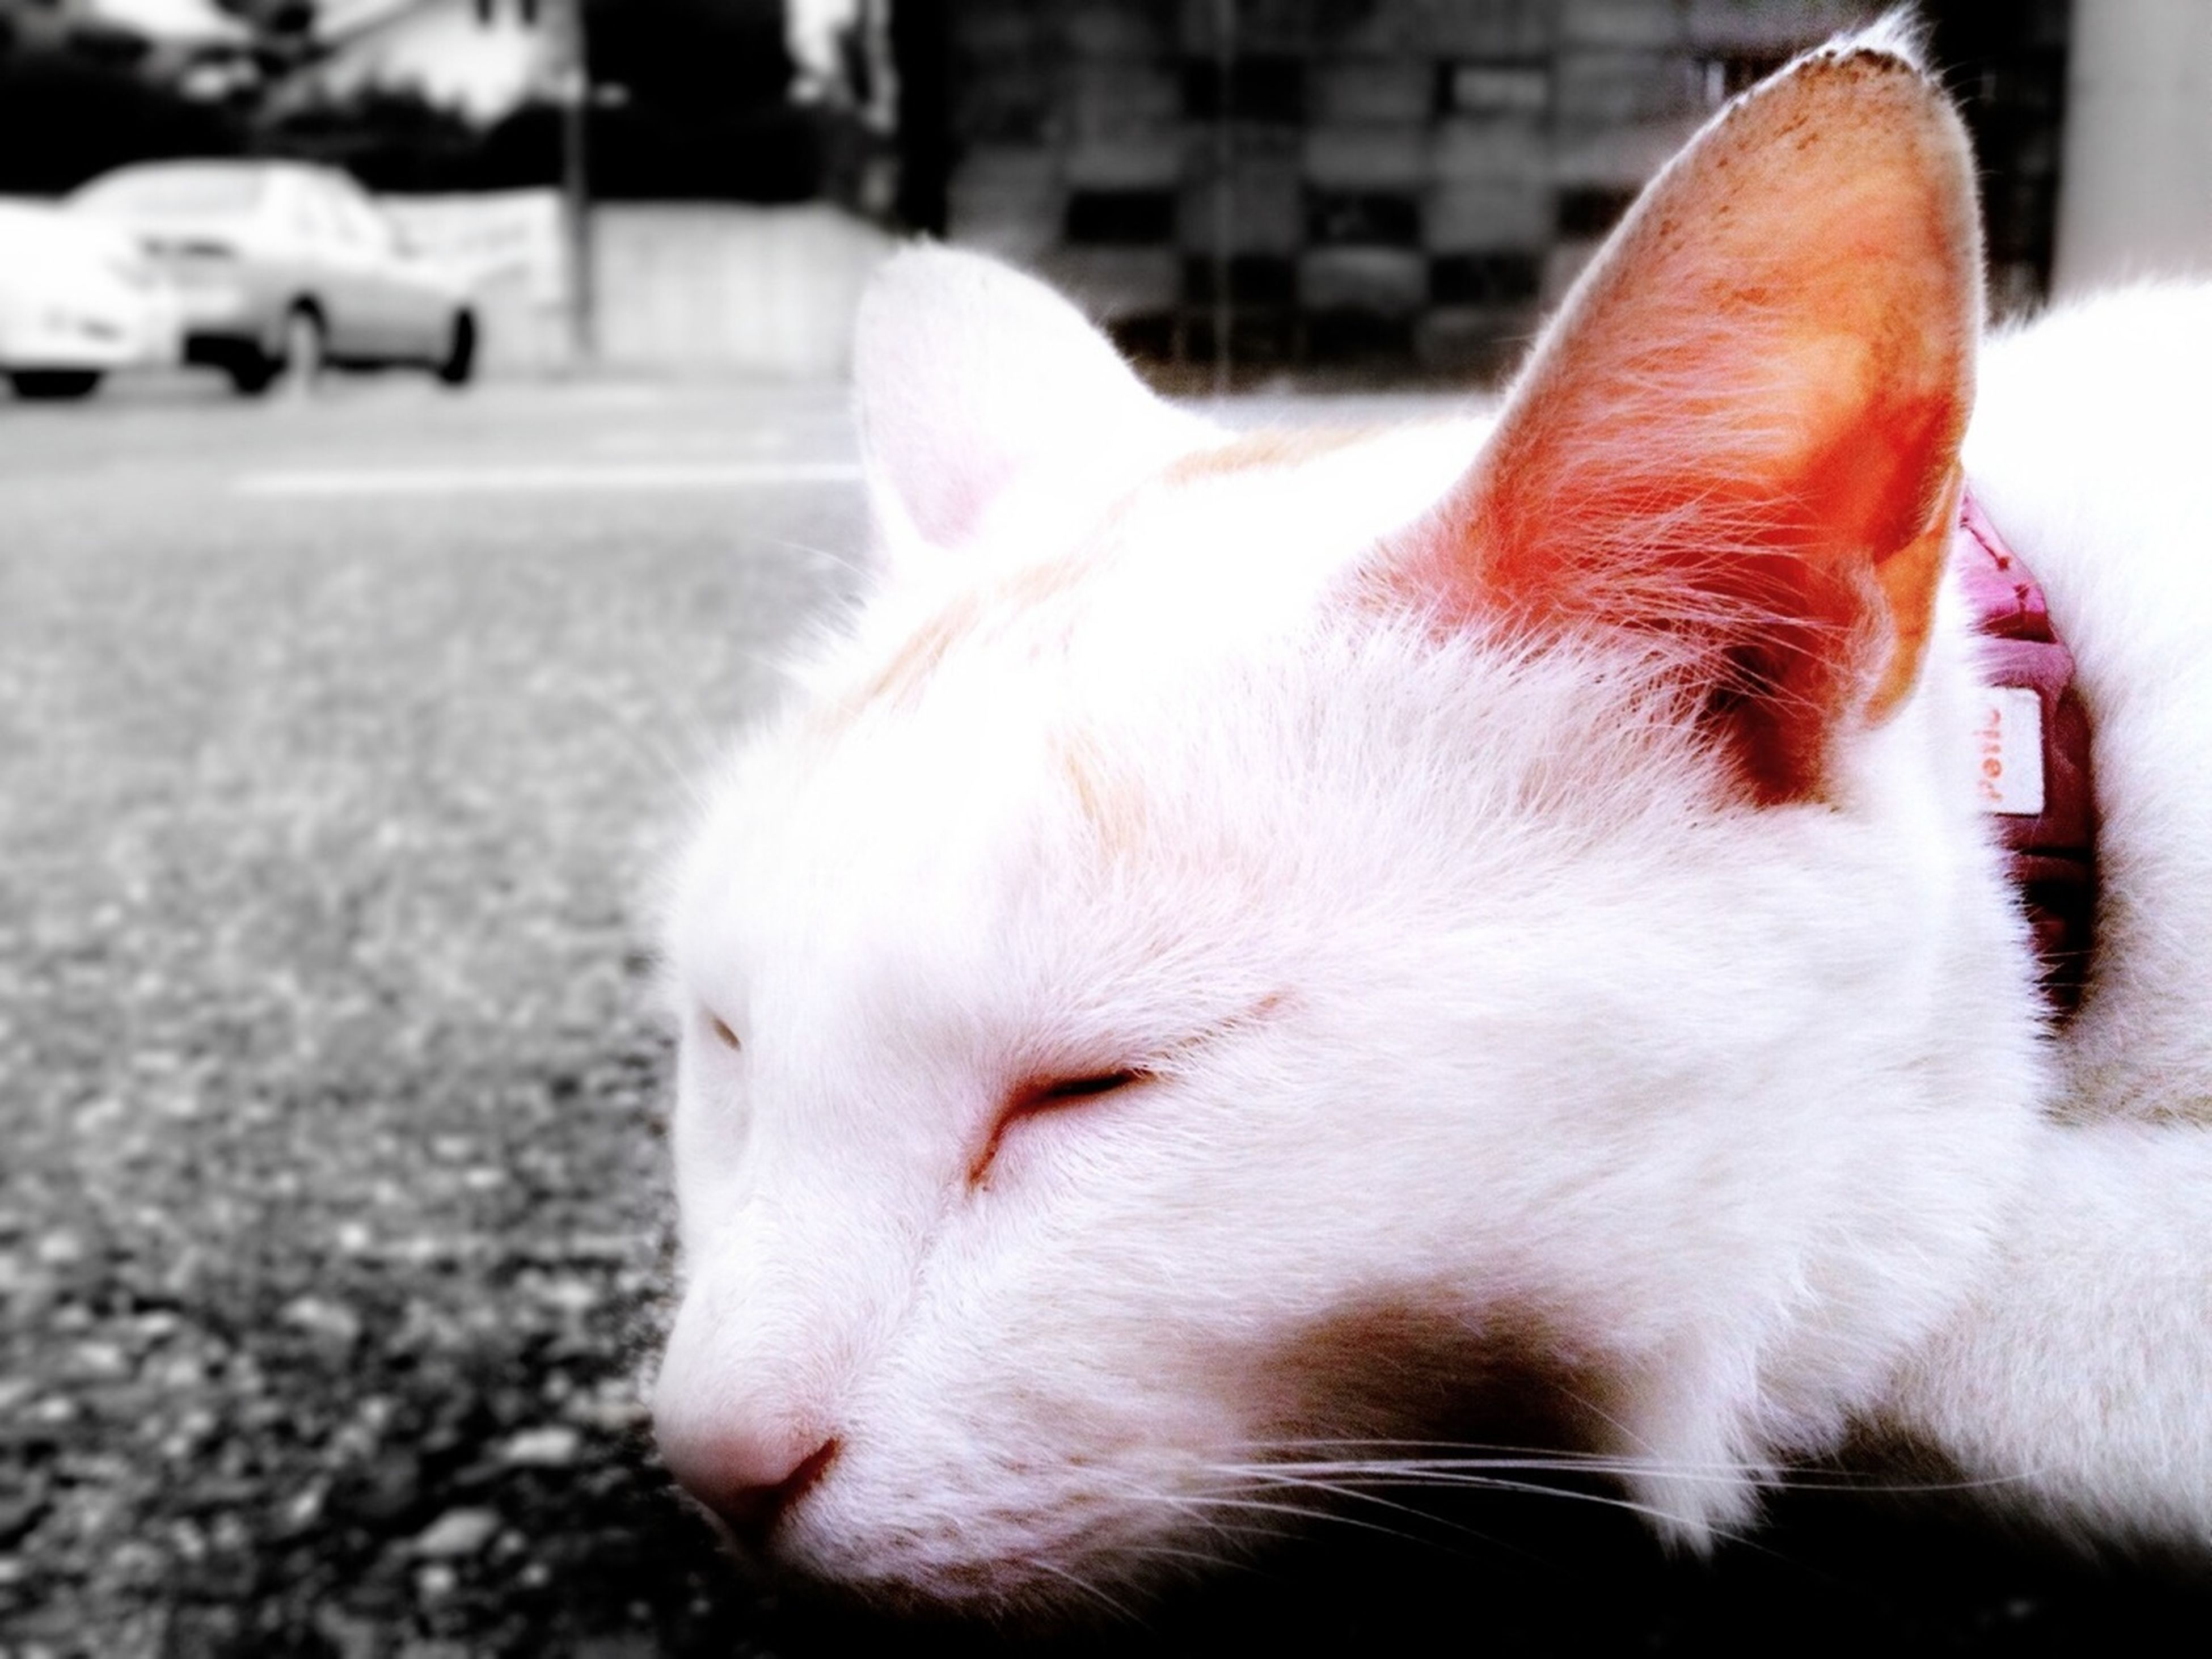 domestic animals, pets, mammal, domestic cat, animal themes, one animal, cat, feline, focus on foreground, whisker, close-up, white color, animal head, relaxation, looking away, street, no people, selective focus, zoology, day